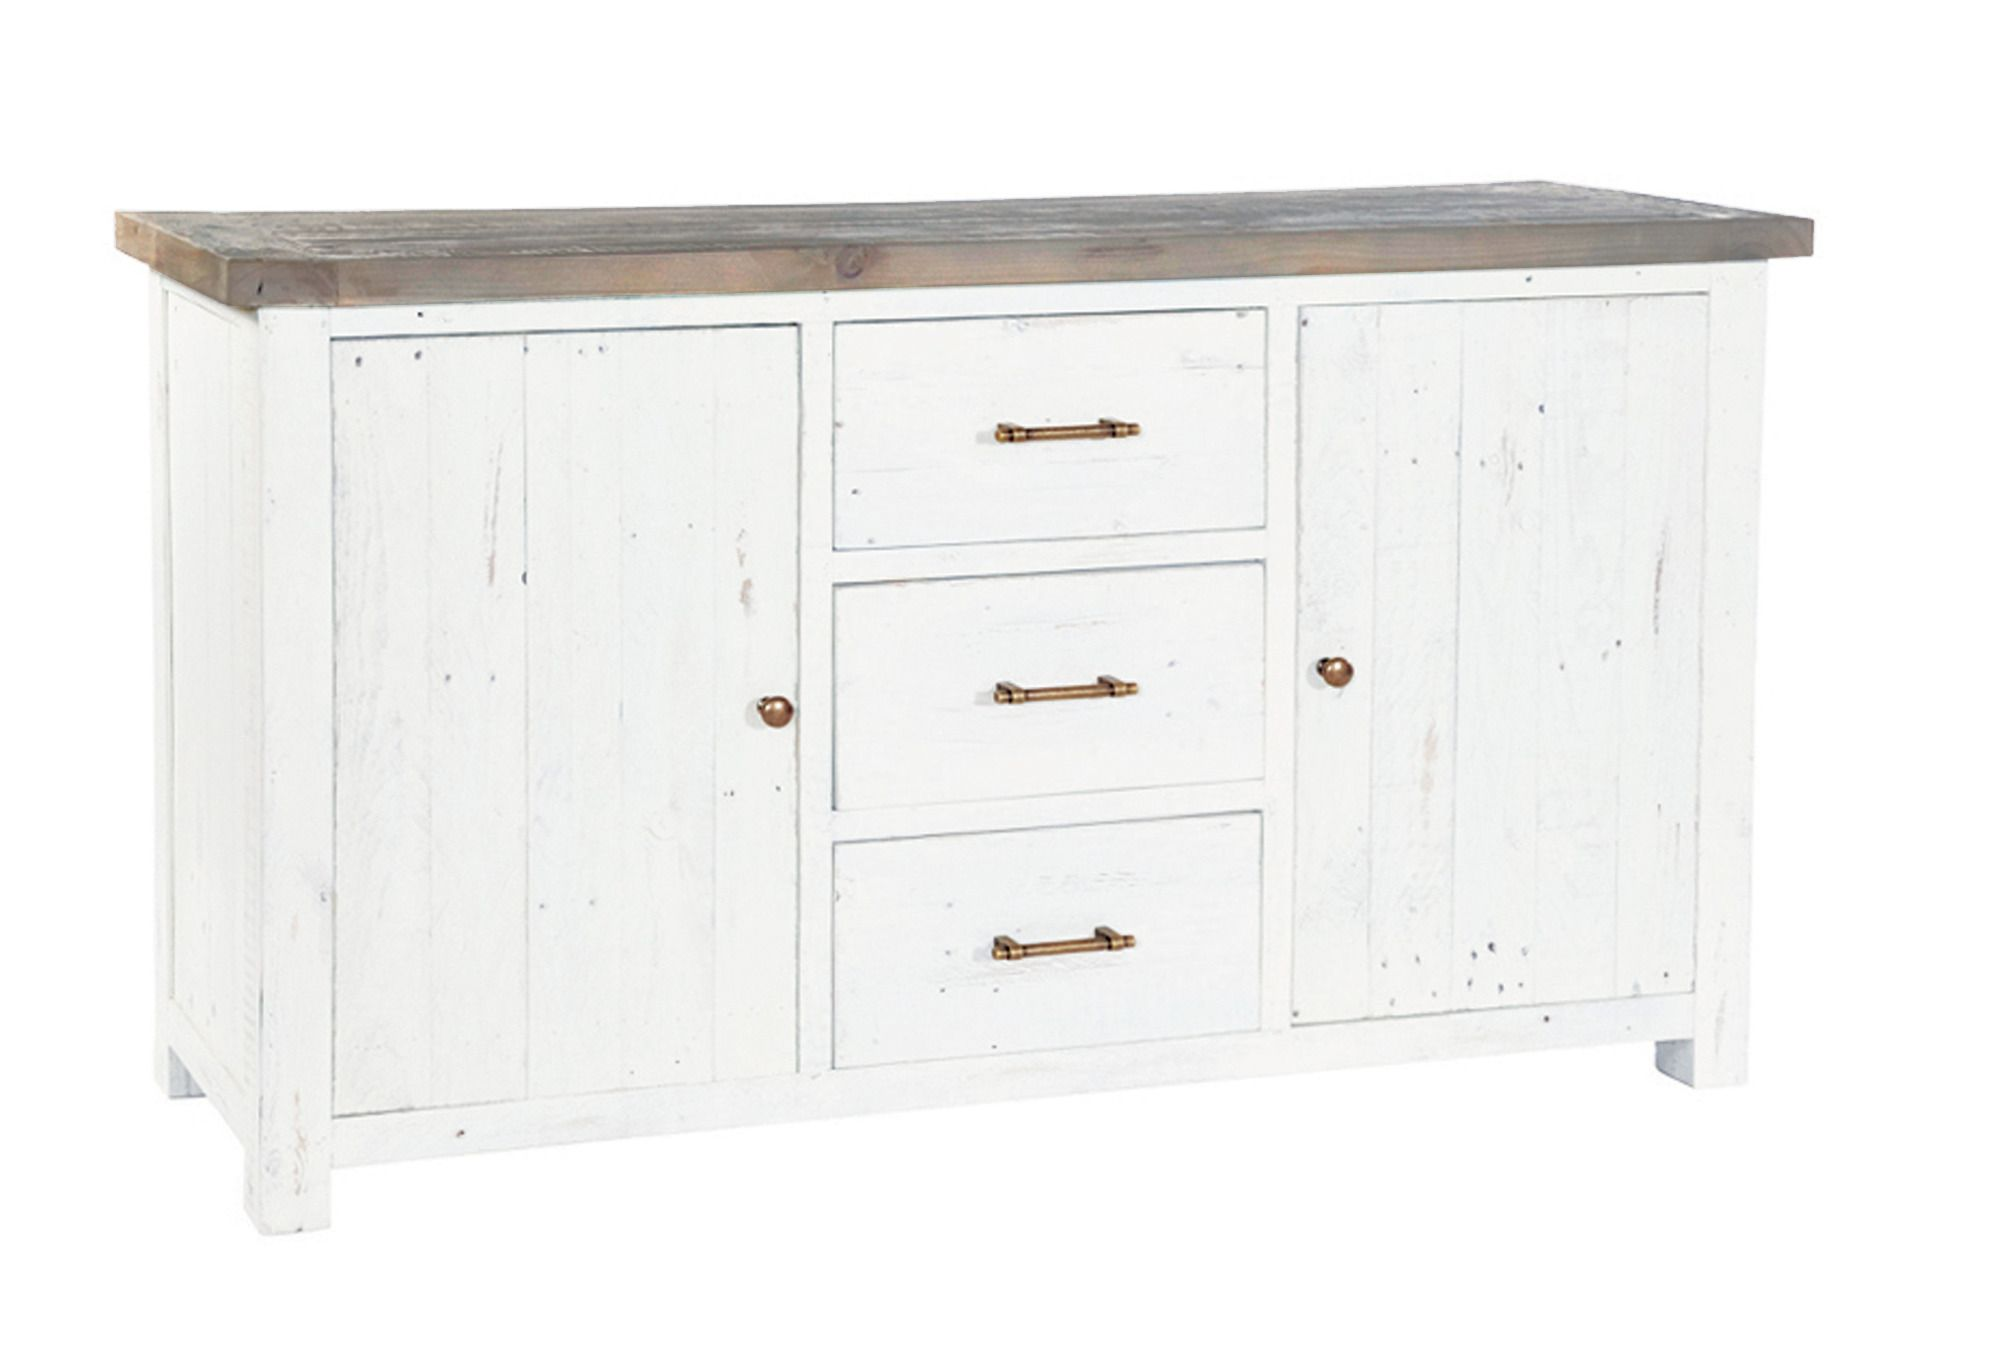 PURBECK LARGE SIDEBOARD Distressed Paint & Driftwood